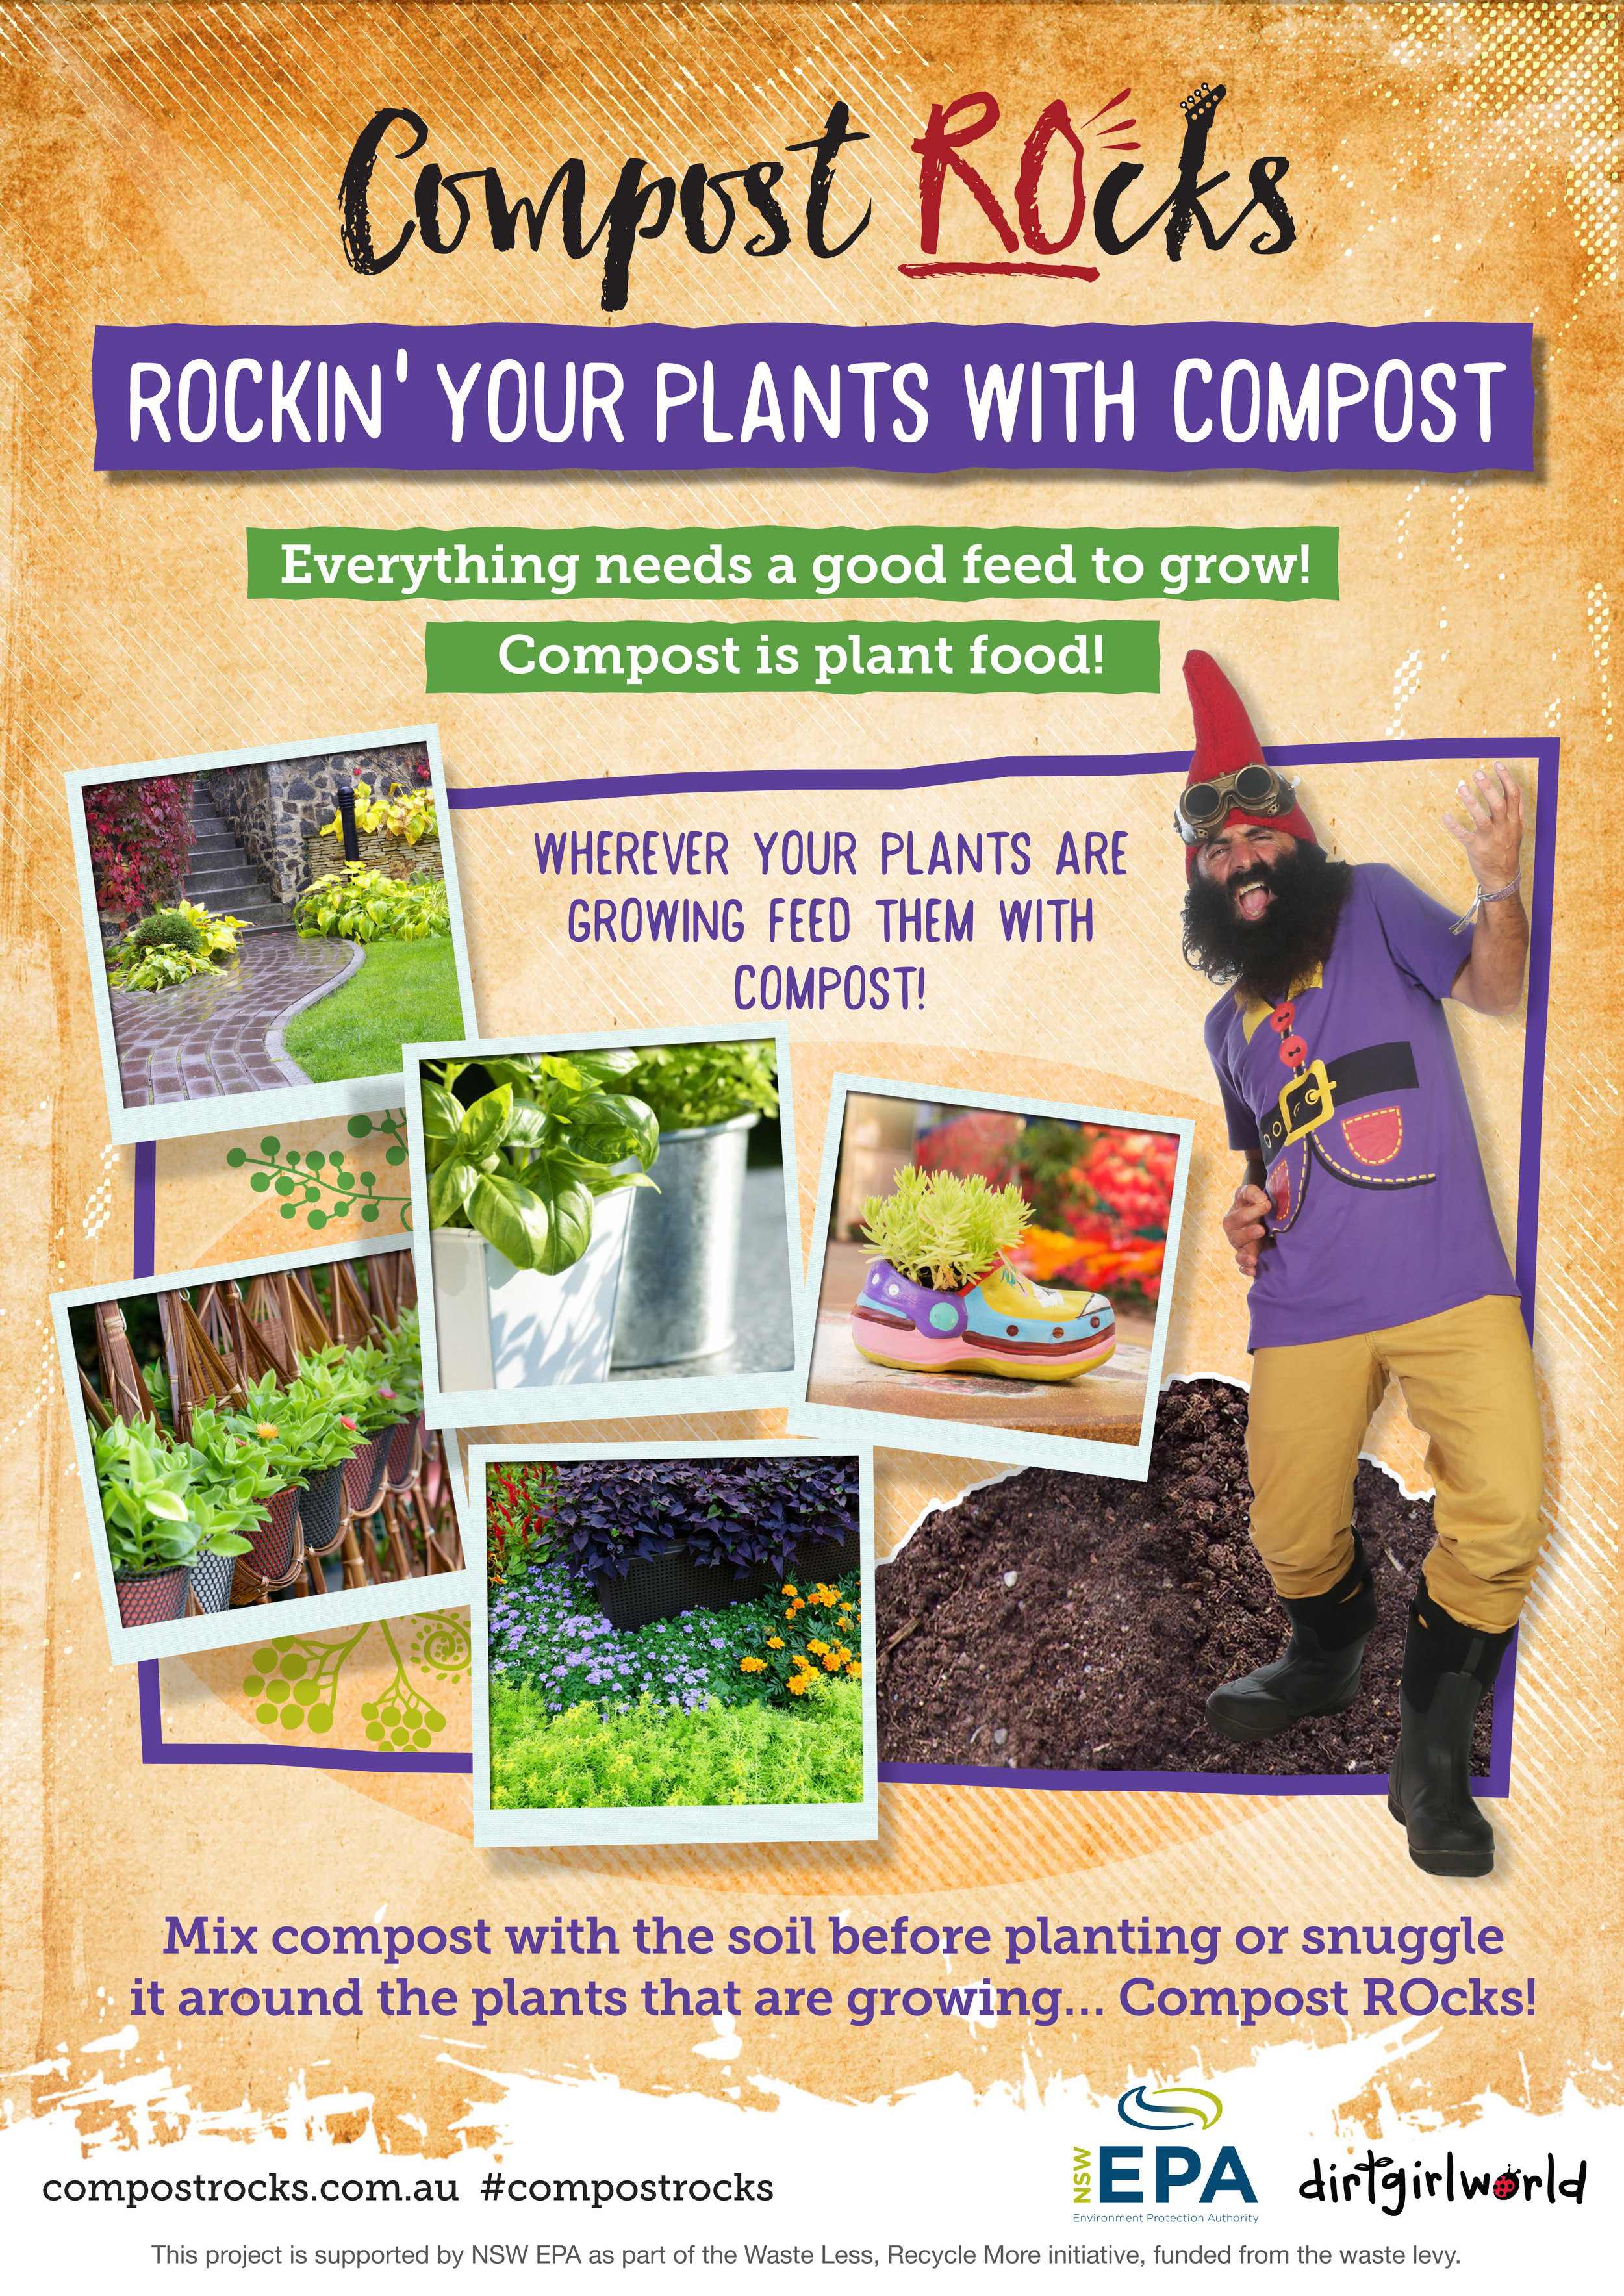 CR_A3_Poster_4_Rockin_Your_Plants.jpg